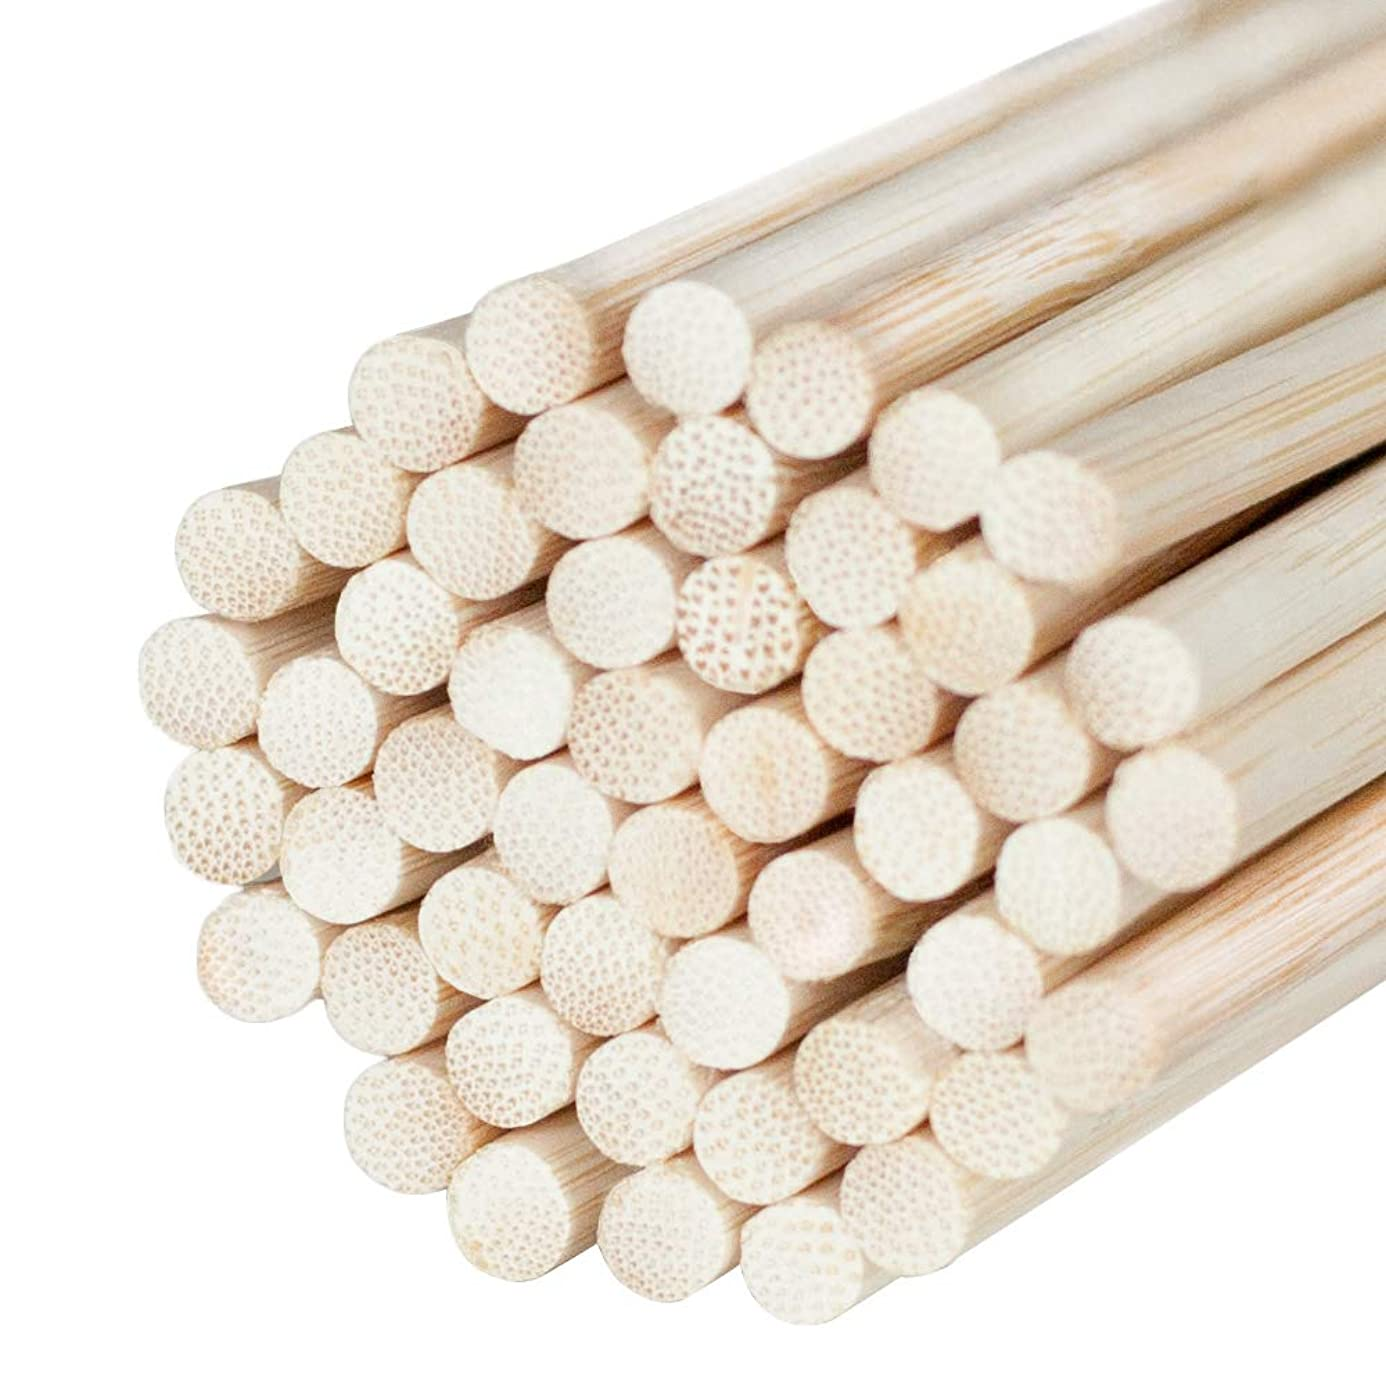 Natural Bamboo Dowel Craft Sticks for Photo Booth Props – Bamboo Rods Sticks for Crafts & Photo Booth Props 12 x 1/4 Inch Wooden Dowels (50 Count) jso2990564